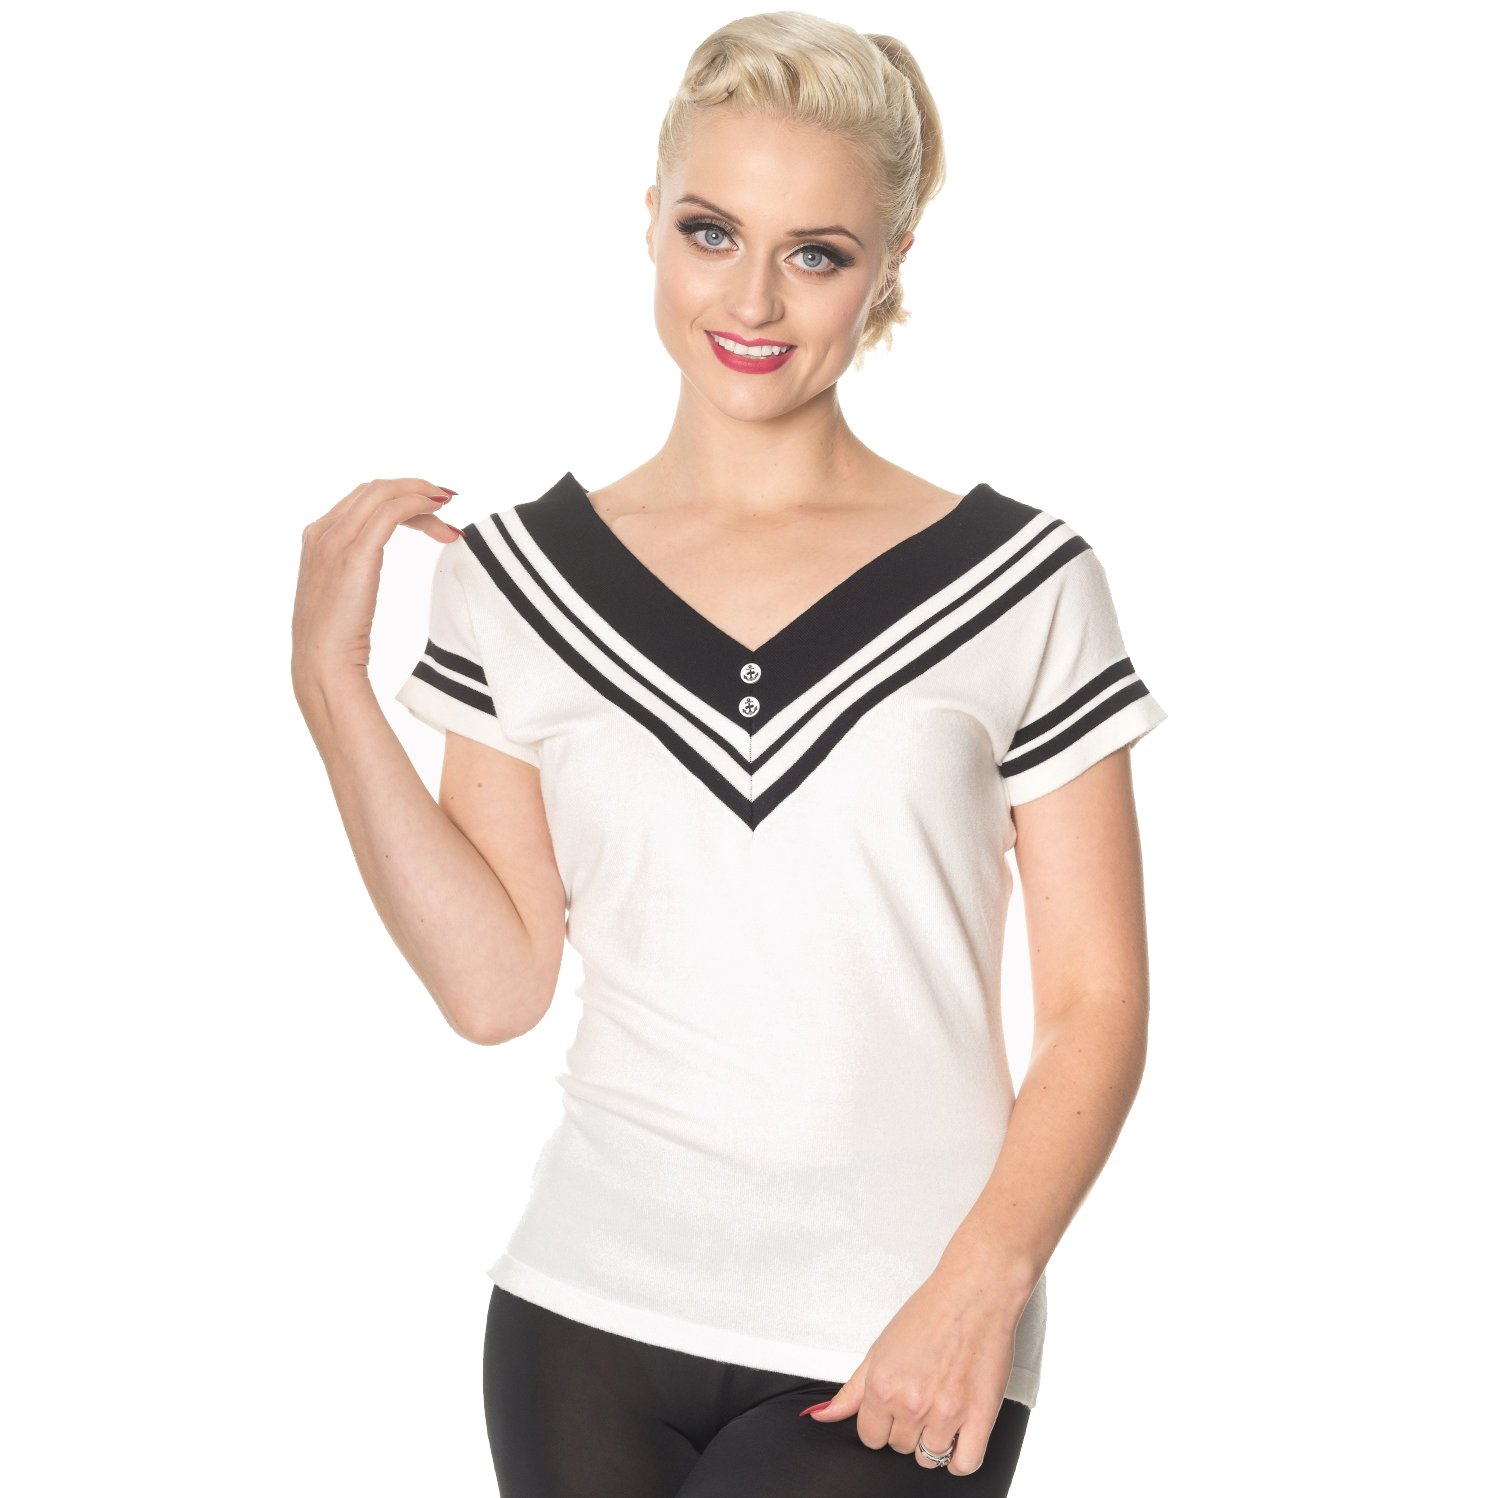 Swing Dance Dresses | Lindy Hop Dresses & Clothing Dancing Days Cedar Nautical Sailor Short Sleeve 1950s Vintage Retro Sweater Top £26.99 AT vintagedancer.com